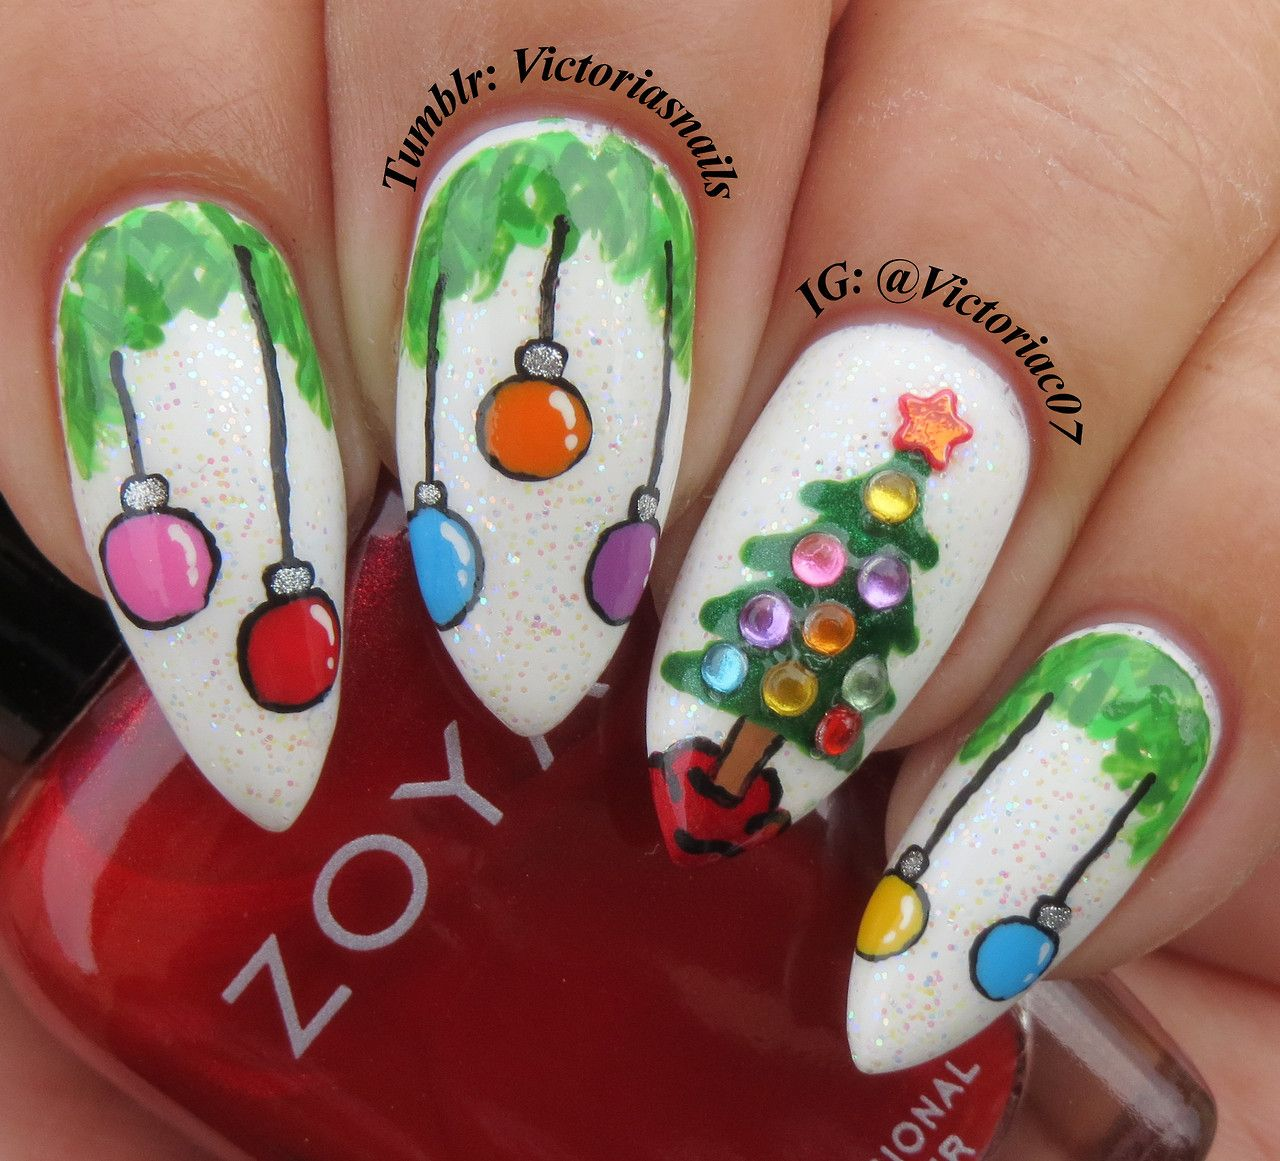 Christmas nails tumblr christmas nails pinterest christmas christmas nails tumblr prinsesfo Choice Image